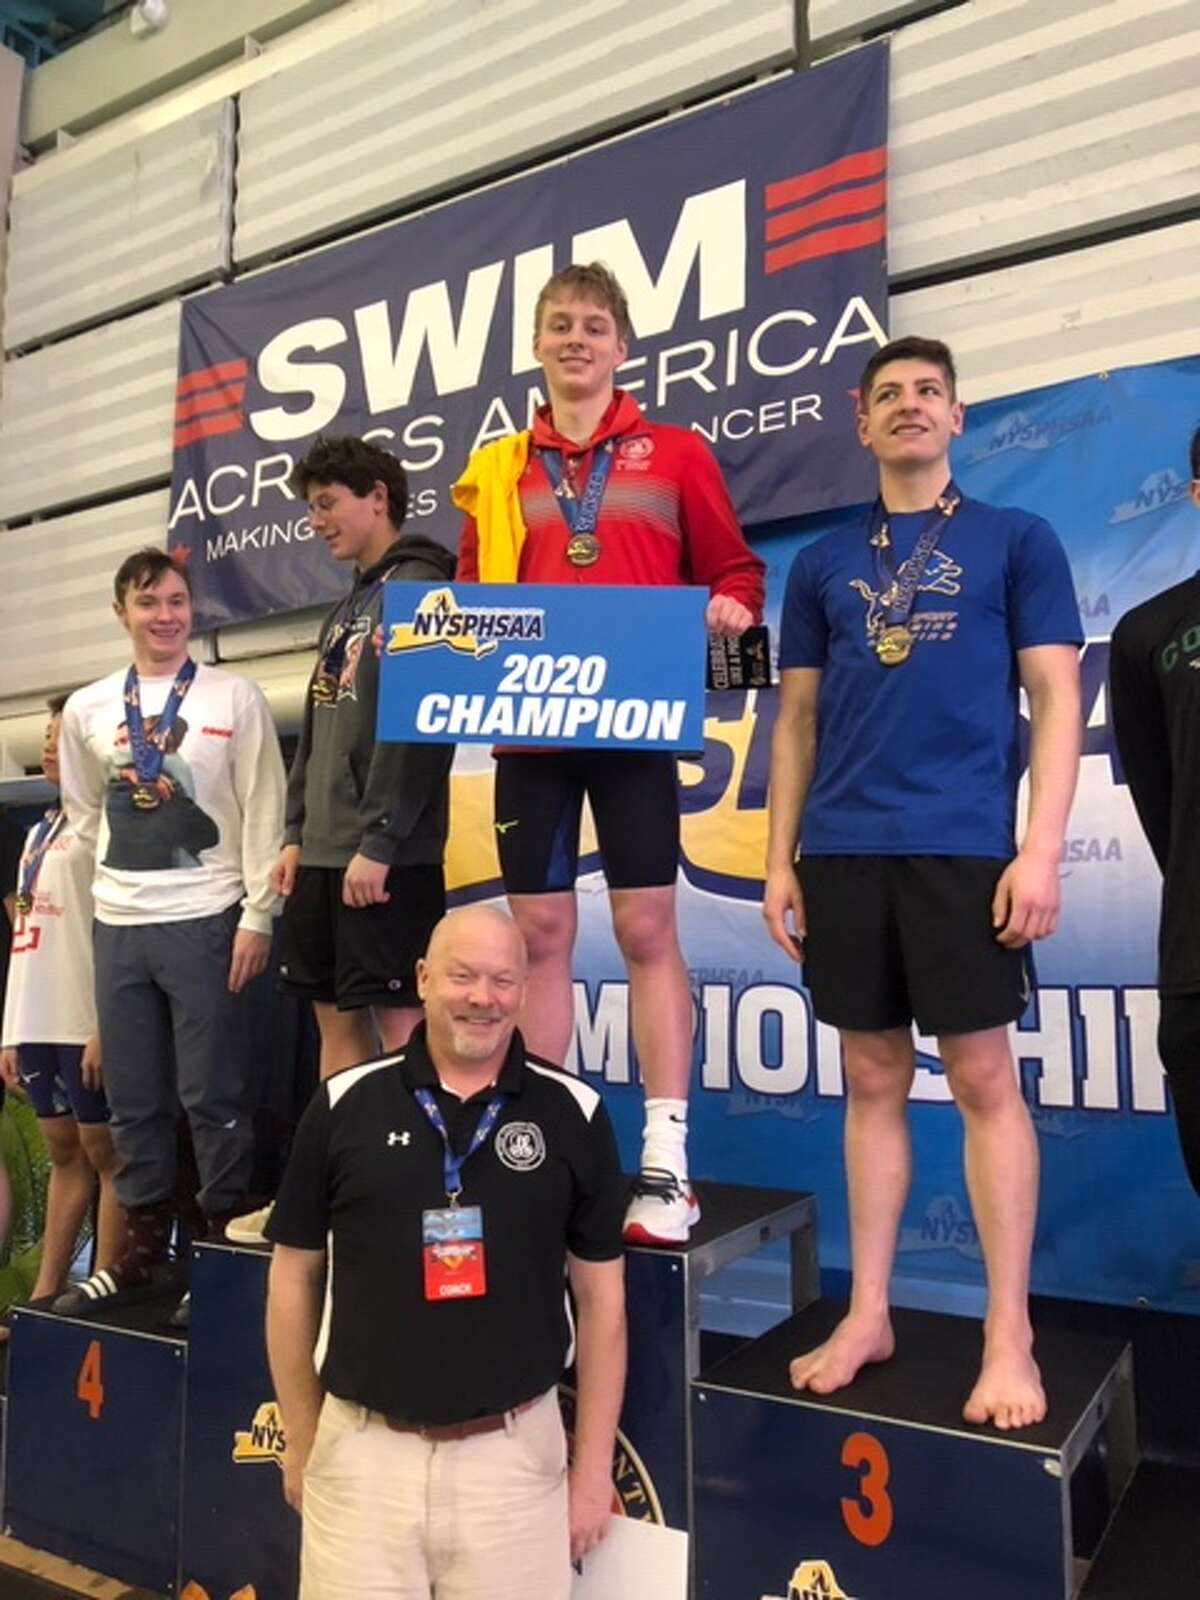 Albany Academy swimmer Bryce Henkel, center top, and Albany Academy coach Scott Young, bottom. (Courtesy photo)